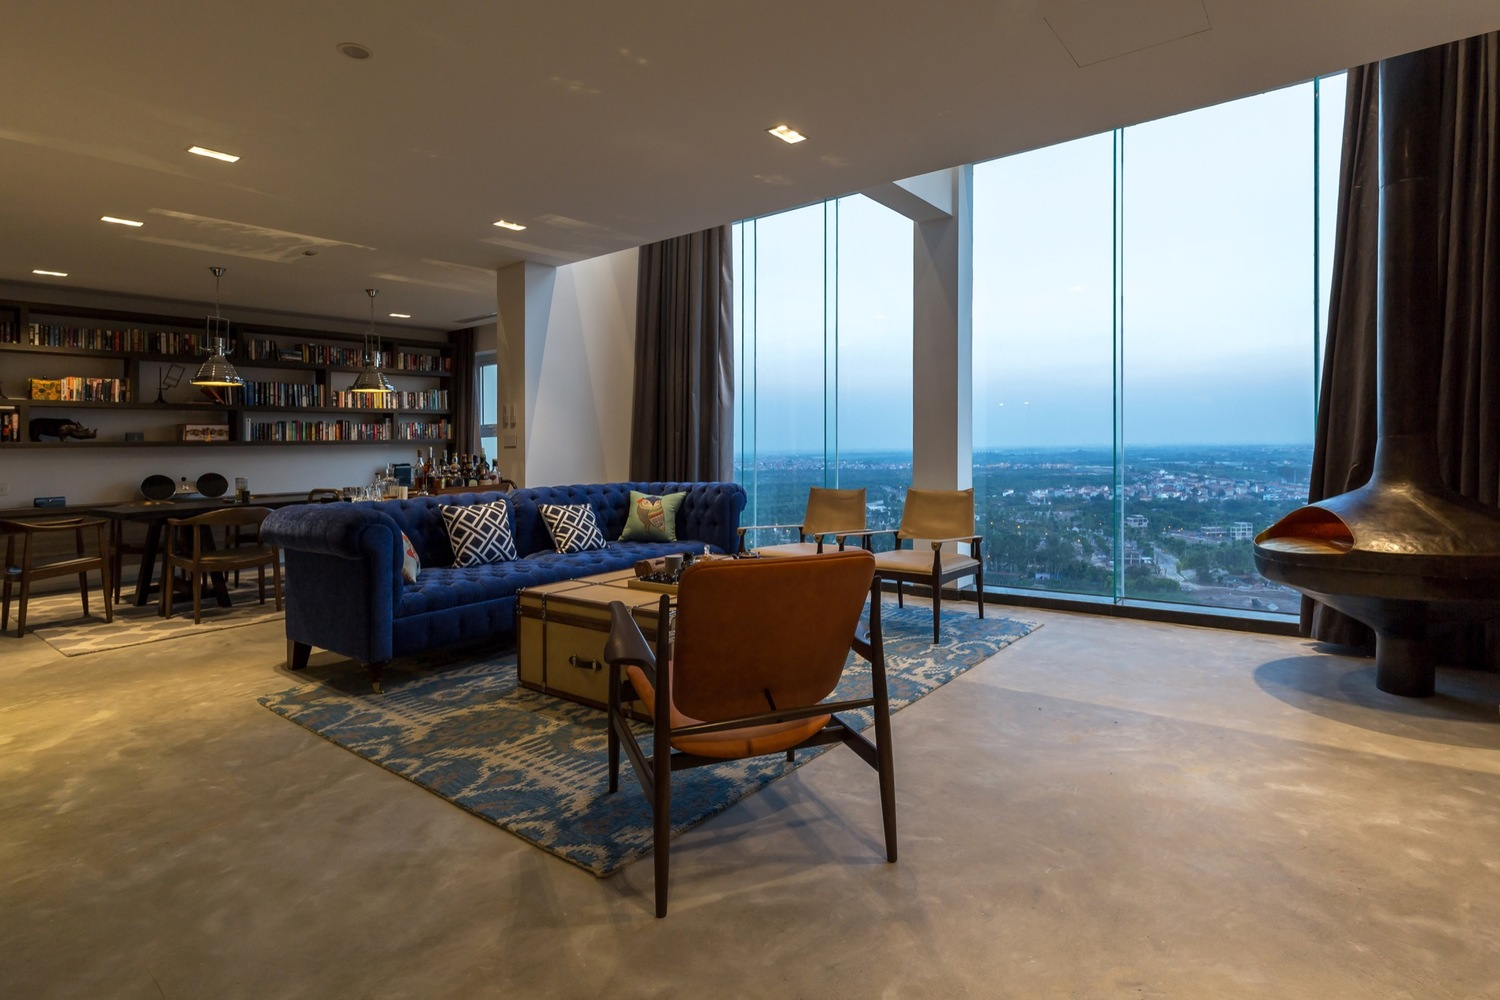 penthouseecopark_photos_15.jpg